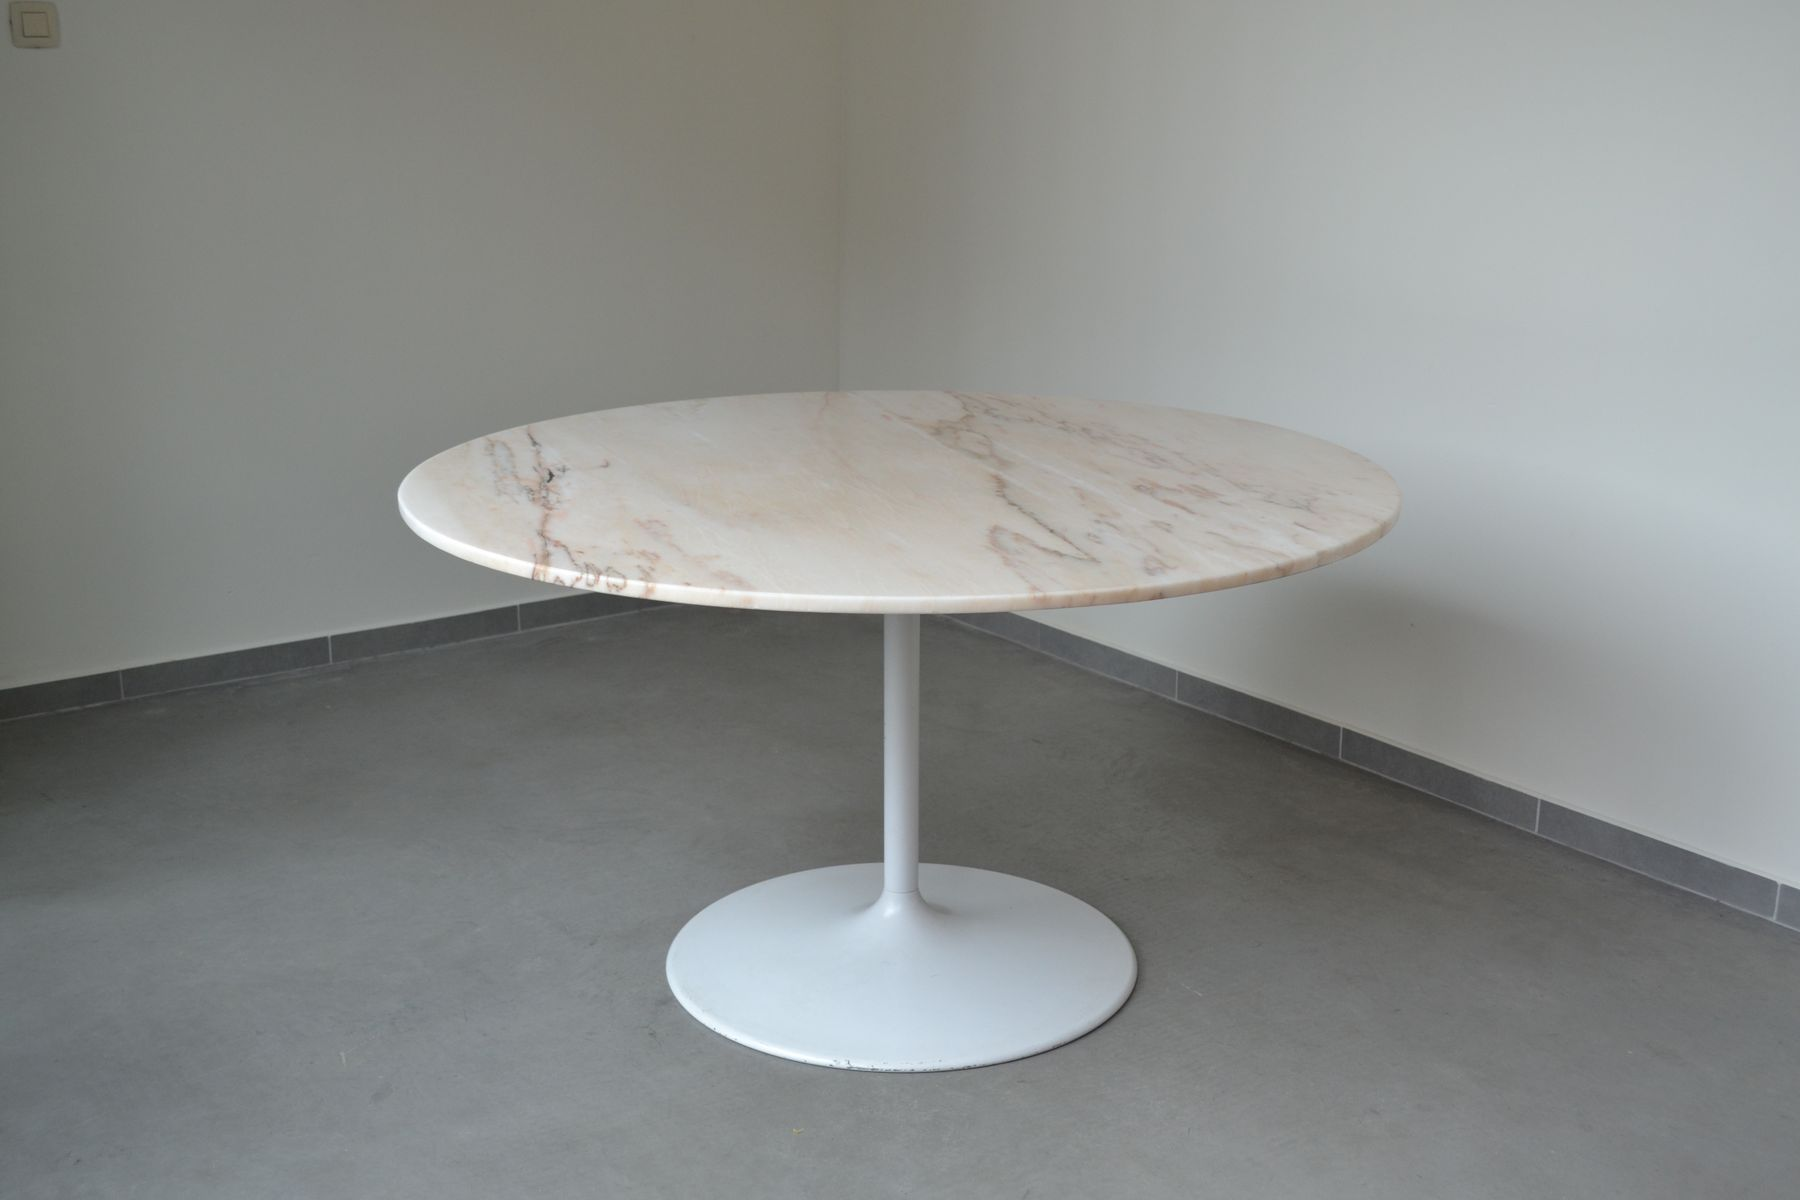 Round Marble Dining Table with Tulip Base 1970s for sale  : round marble dining table with tulip base 1970s 1 from www.pamono.com size 1800 x 1200 jpeg 63kB